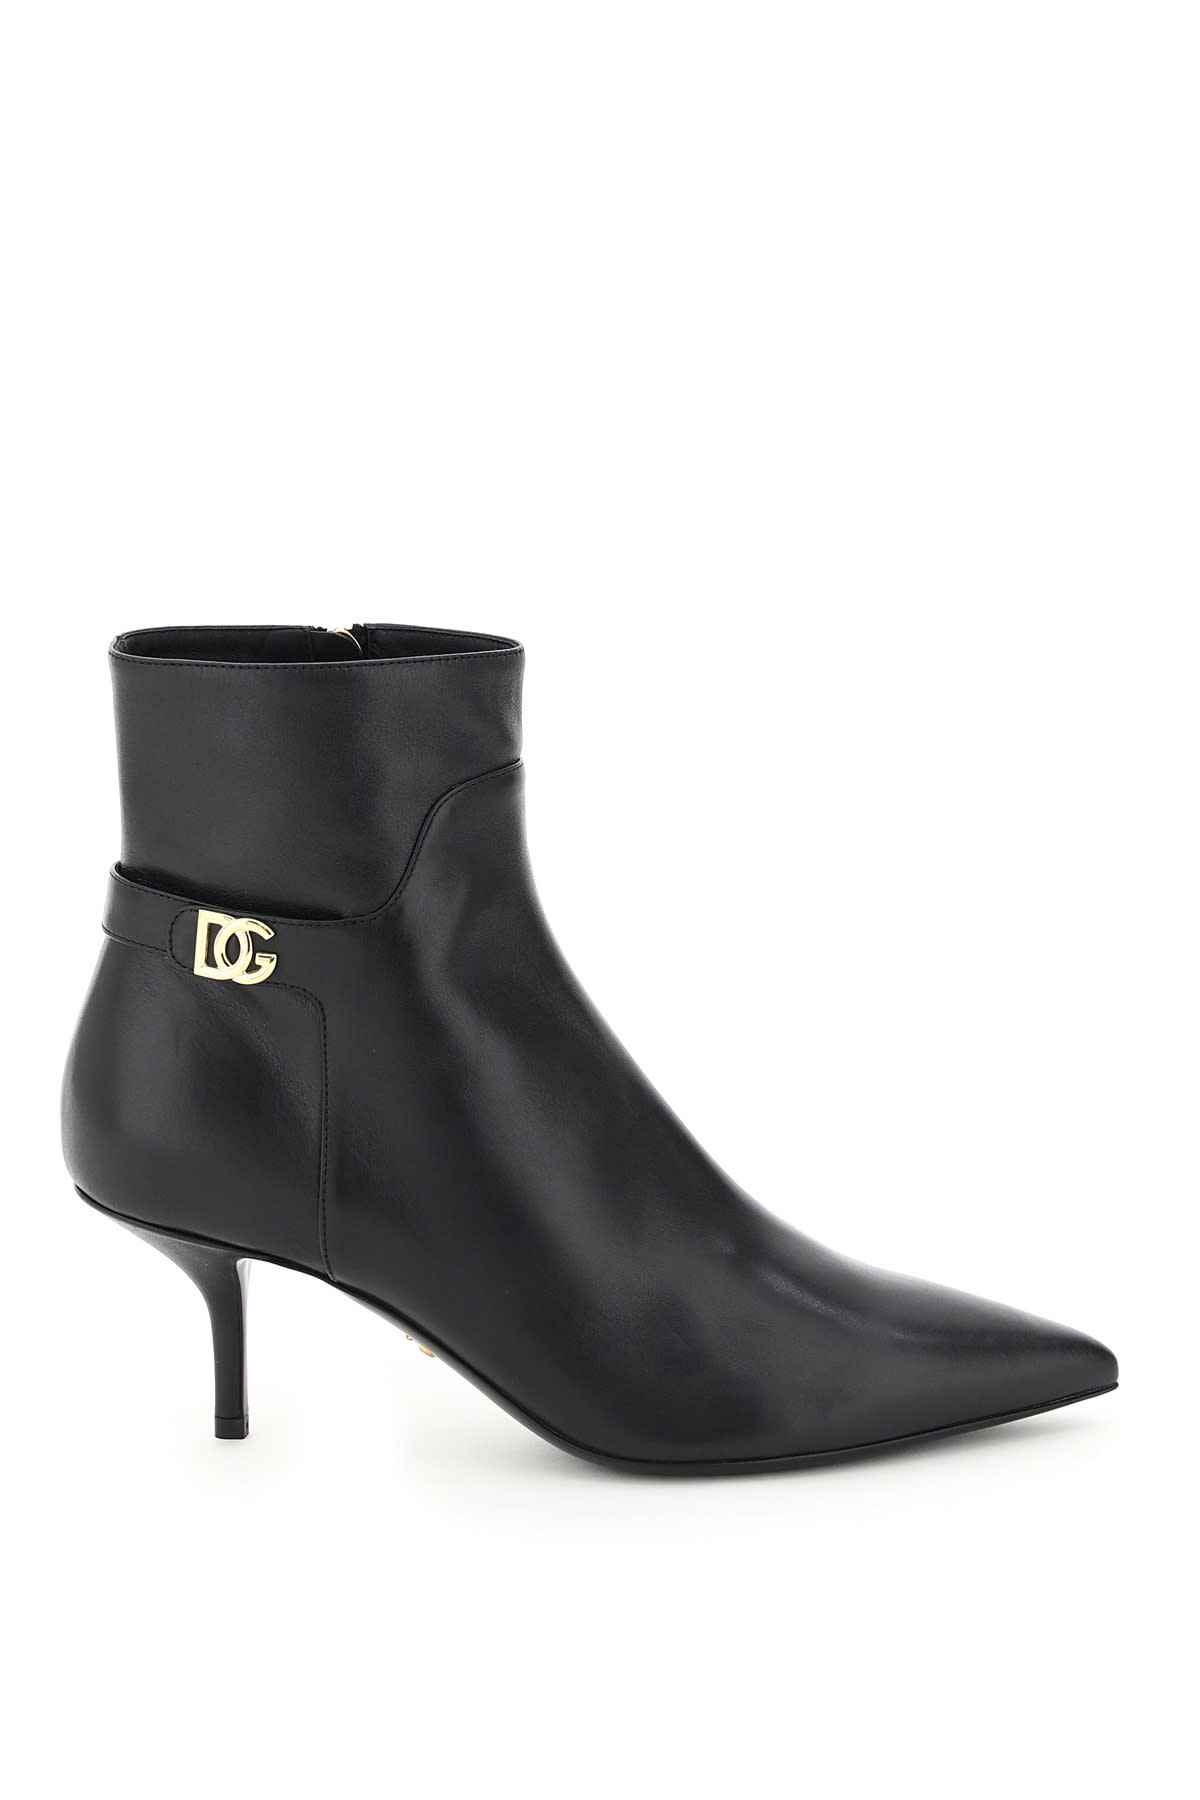 Dolce & Gabbana Cardinale Boots With Dg Logo